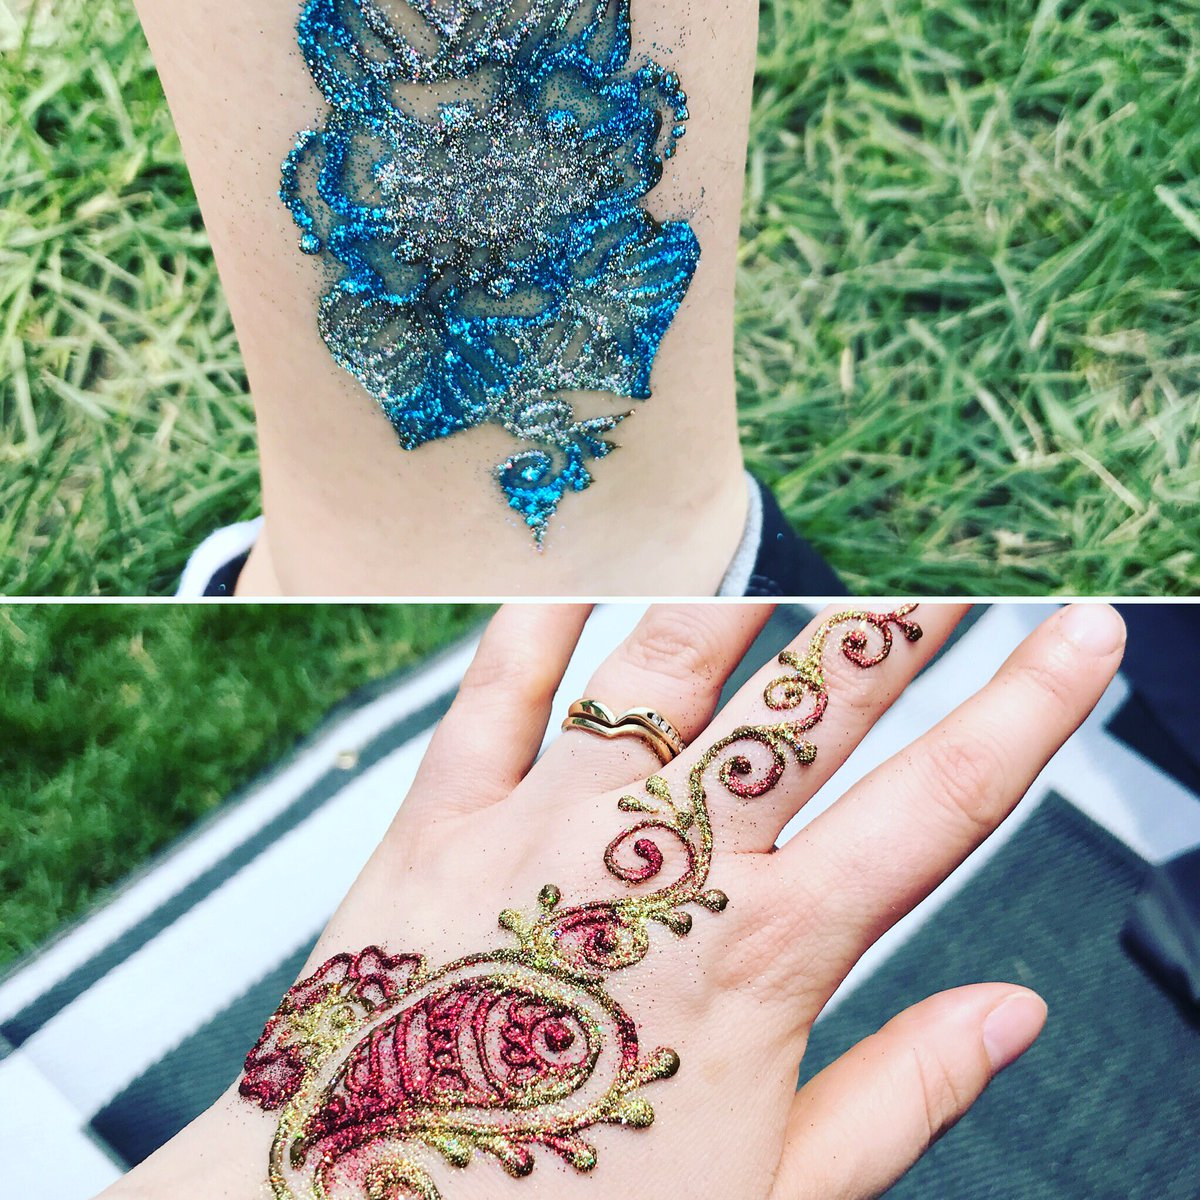 Caryn Lix On Twitter Some Dragonboat Henna With My Amazing Sis